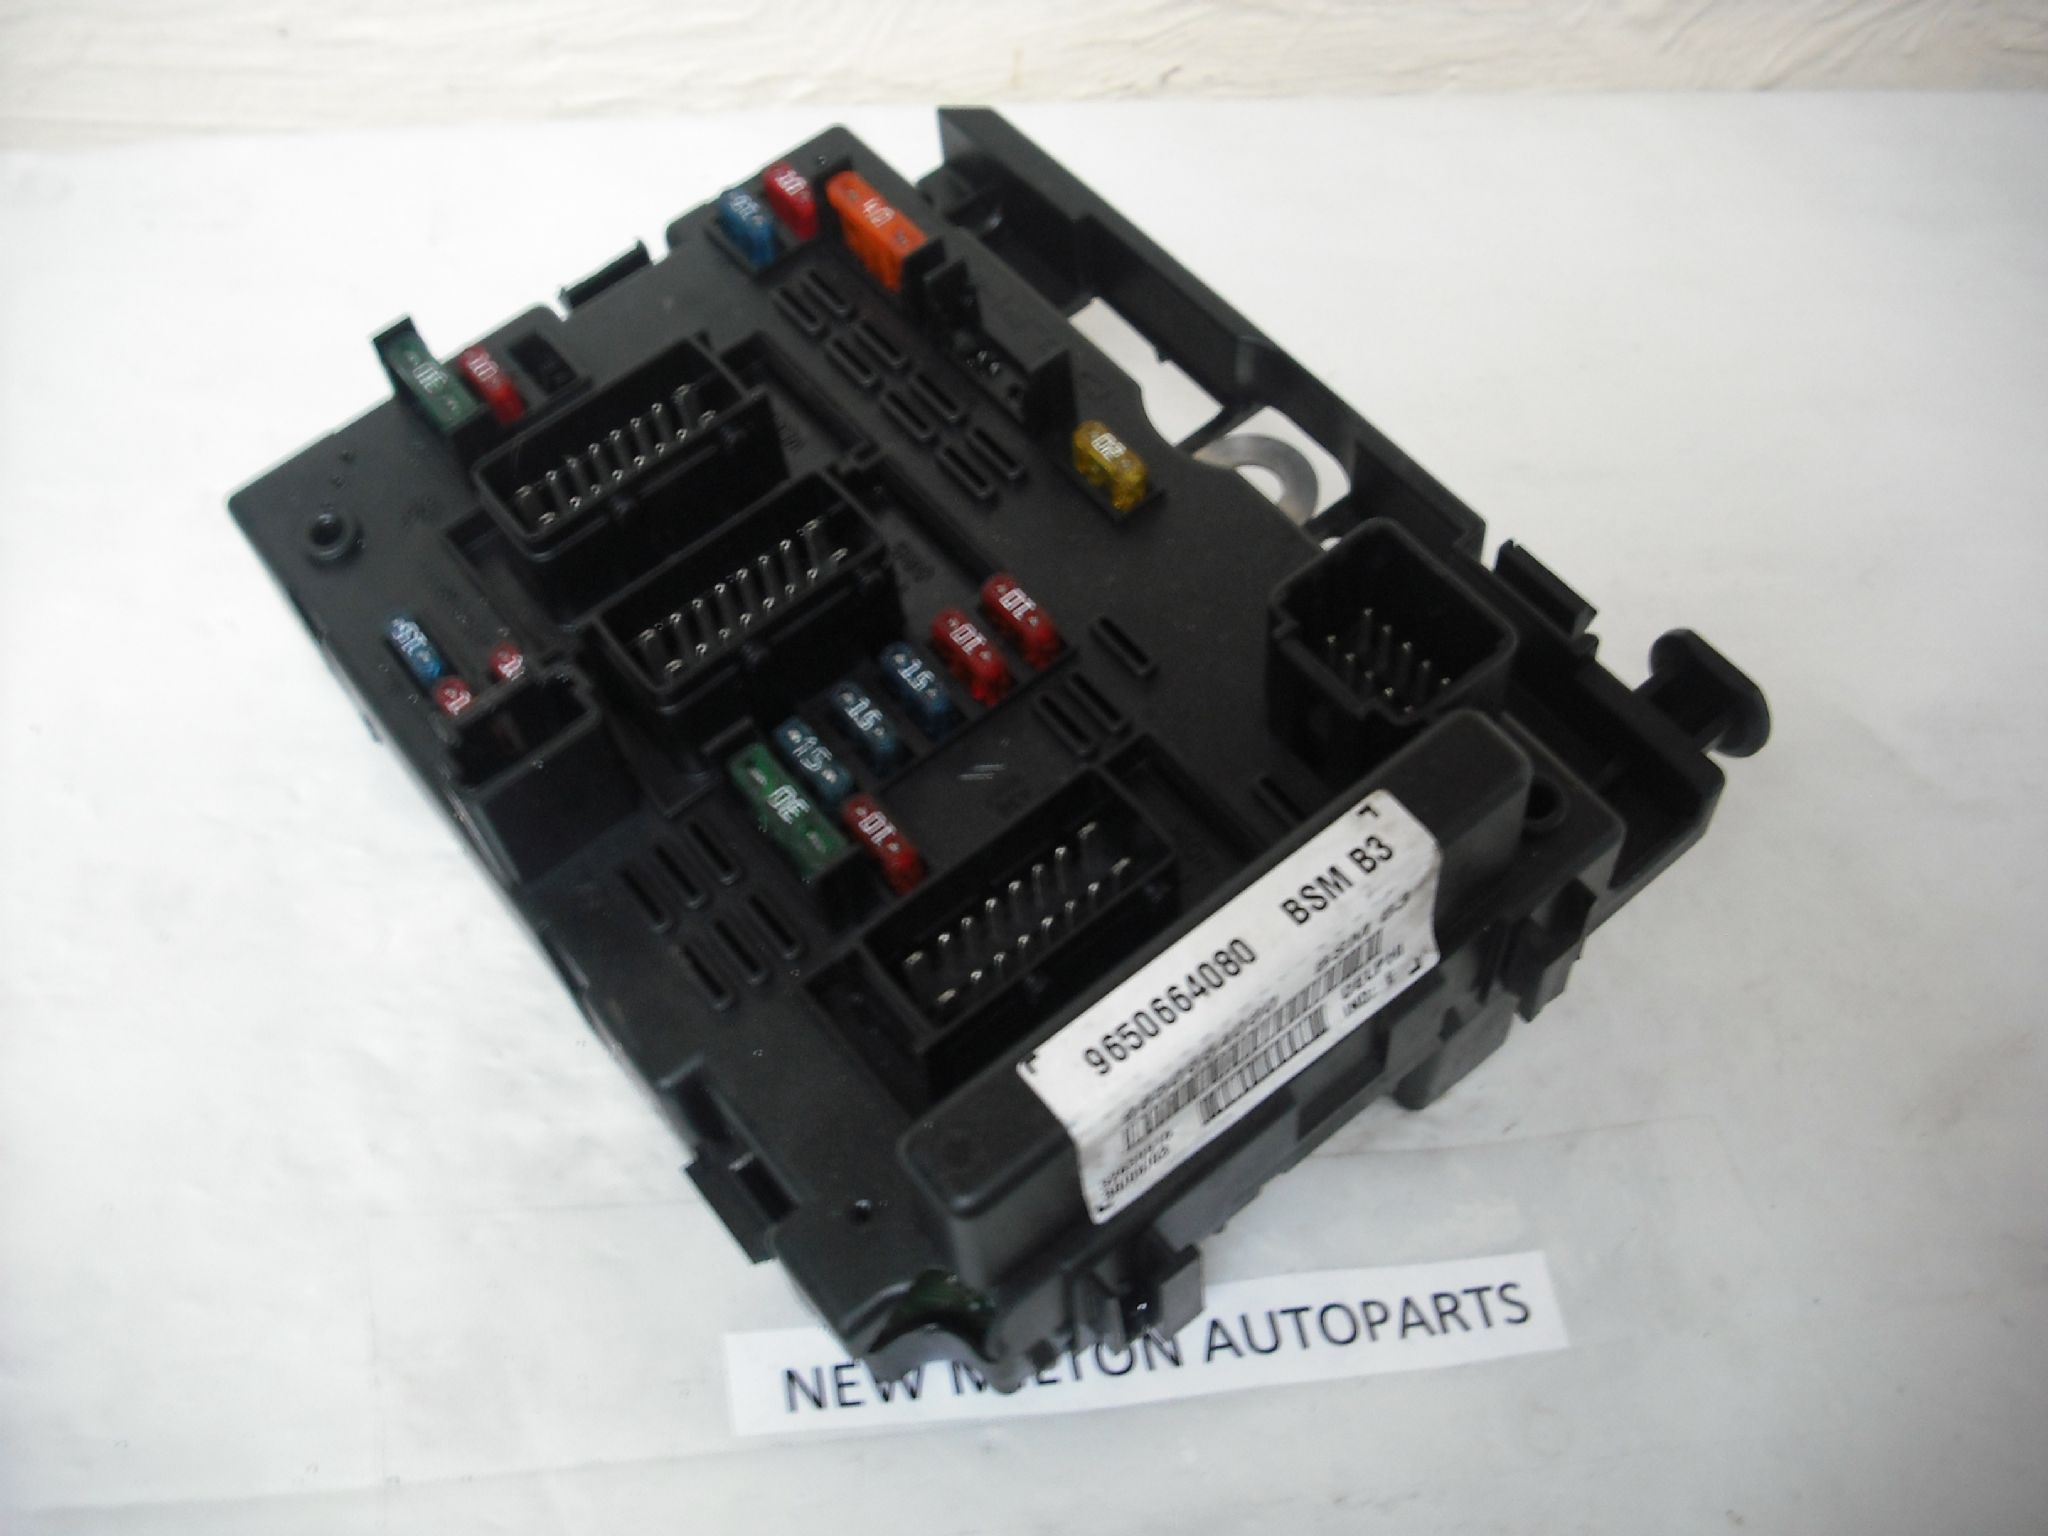 sorry out of stock ................. citroen c8 peugeot 807 fuse box controller 9650664080 bsm b3 delphi 6197 p sorry out of stock citroen c8 peugeot 807 fuse delphi fuse box at bayanpartner.co